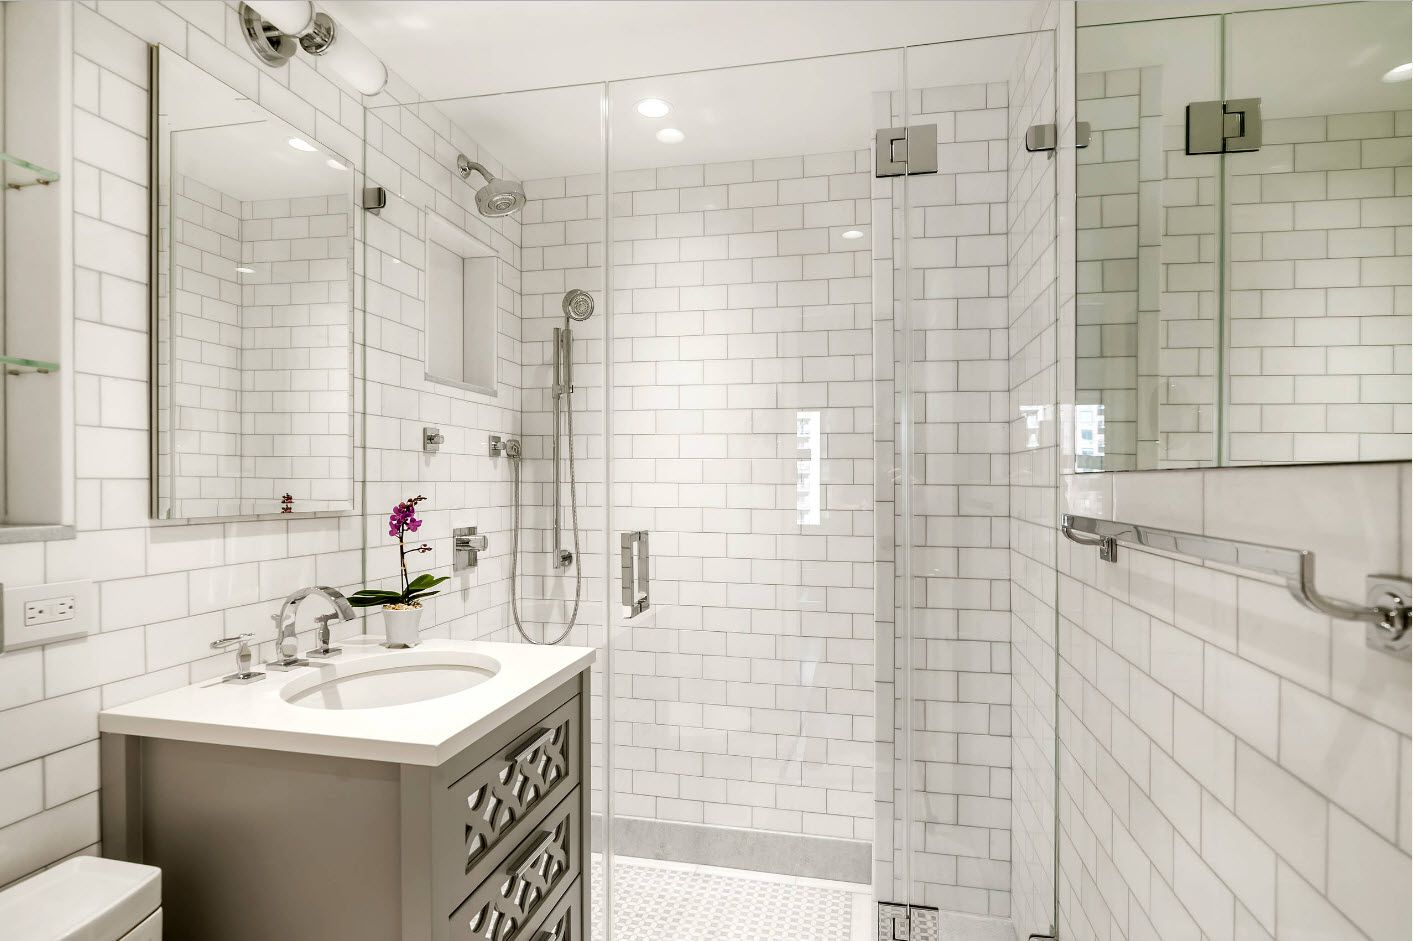 Small decorative tile to finish all the bathroom surfaces